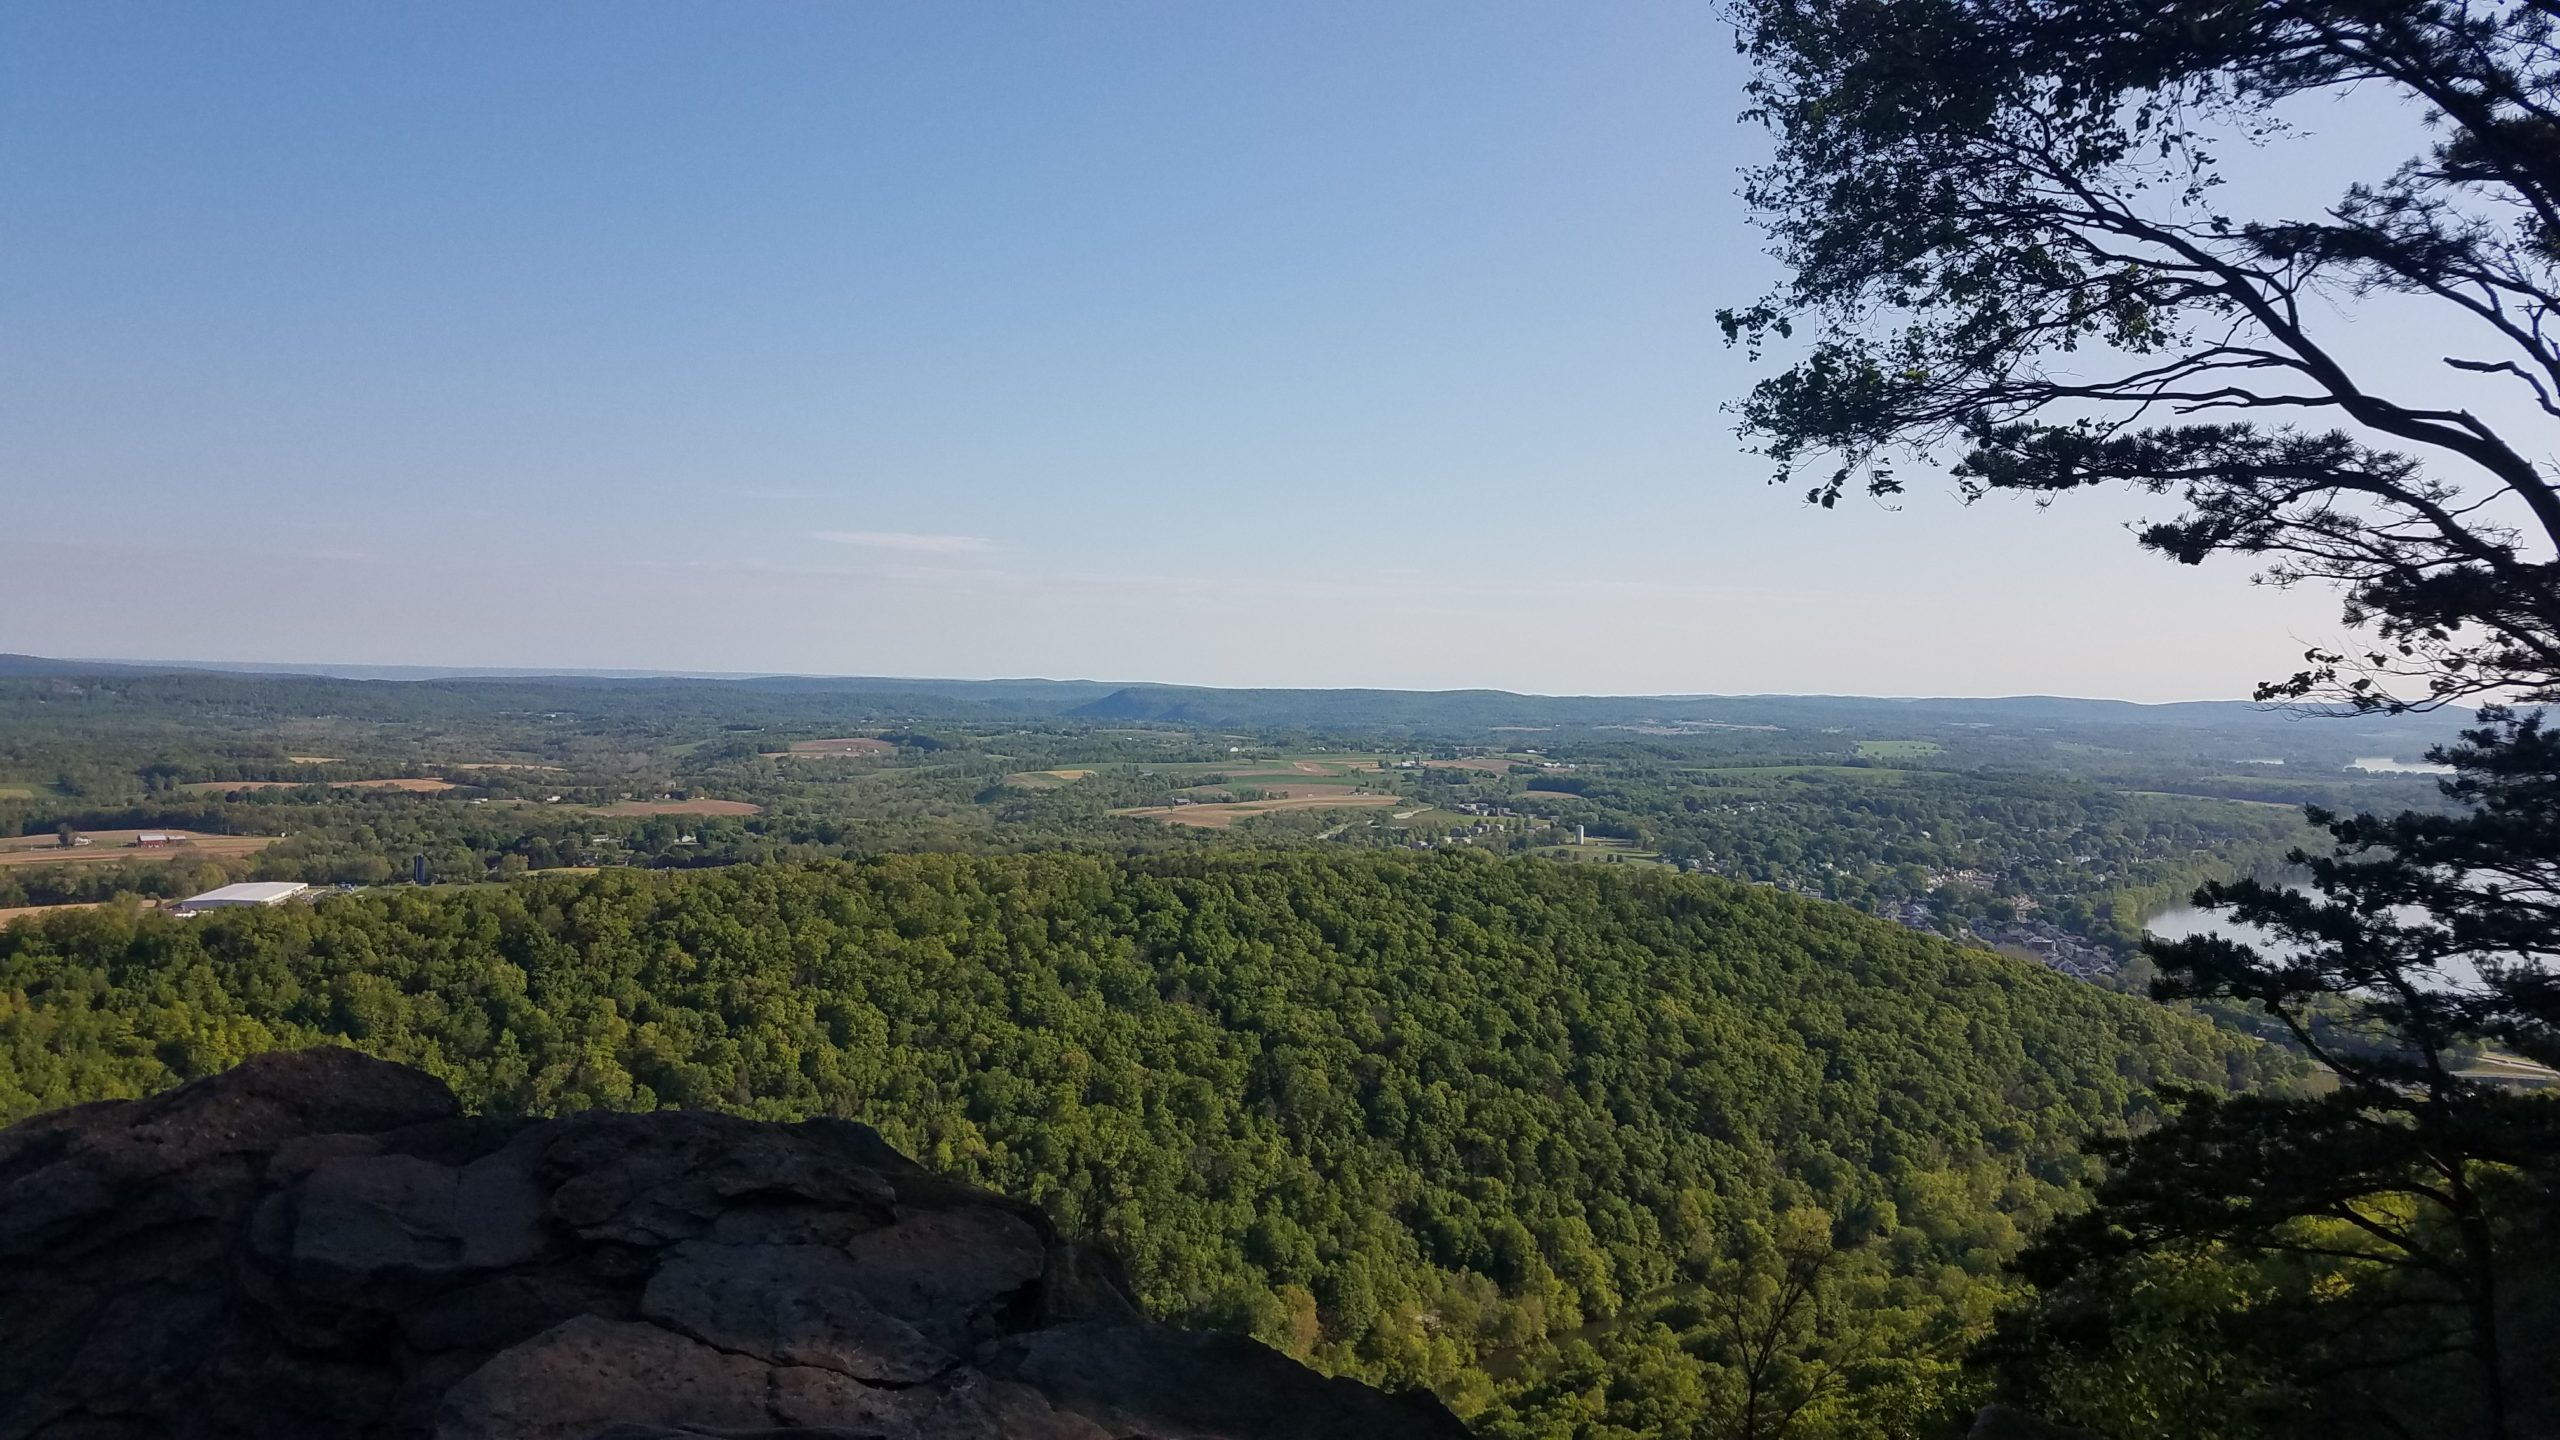 A cliff overlooking the PA countryside